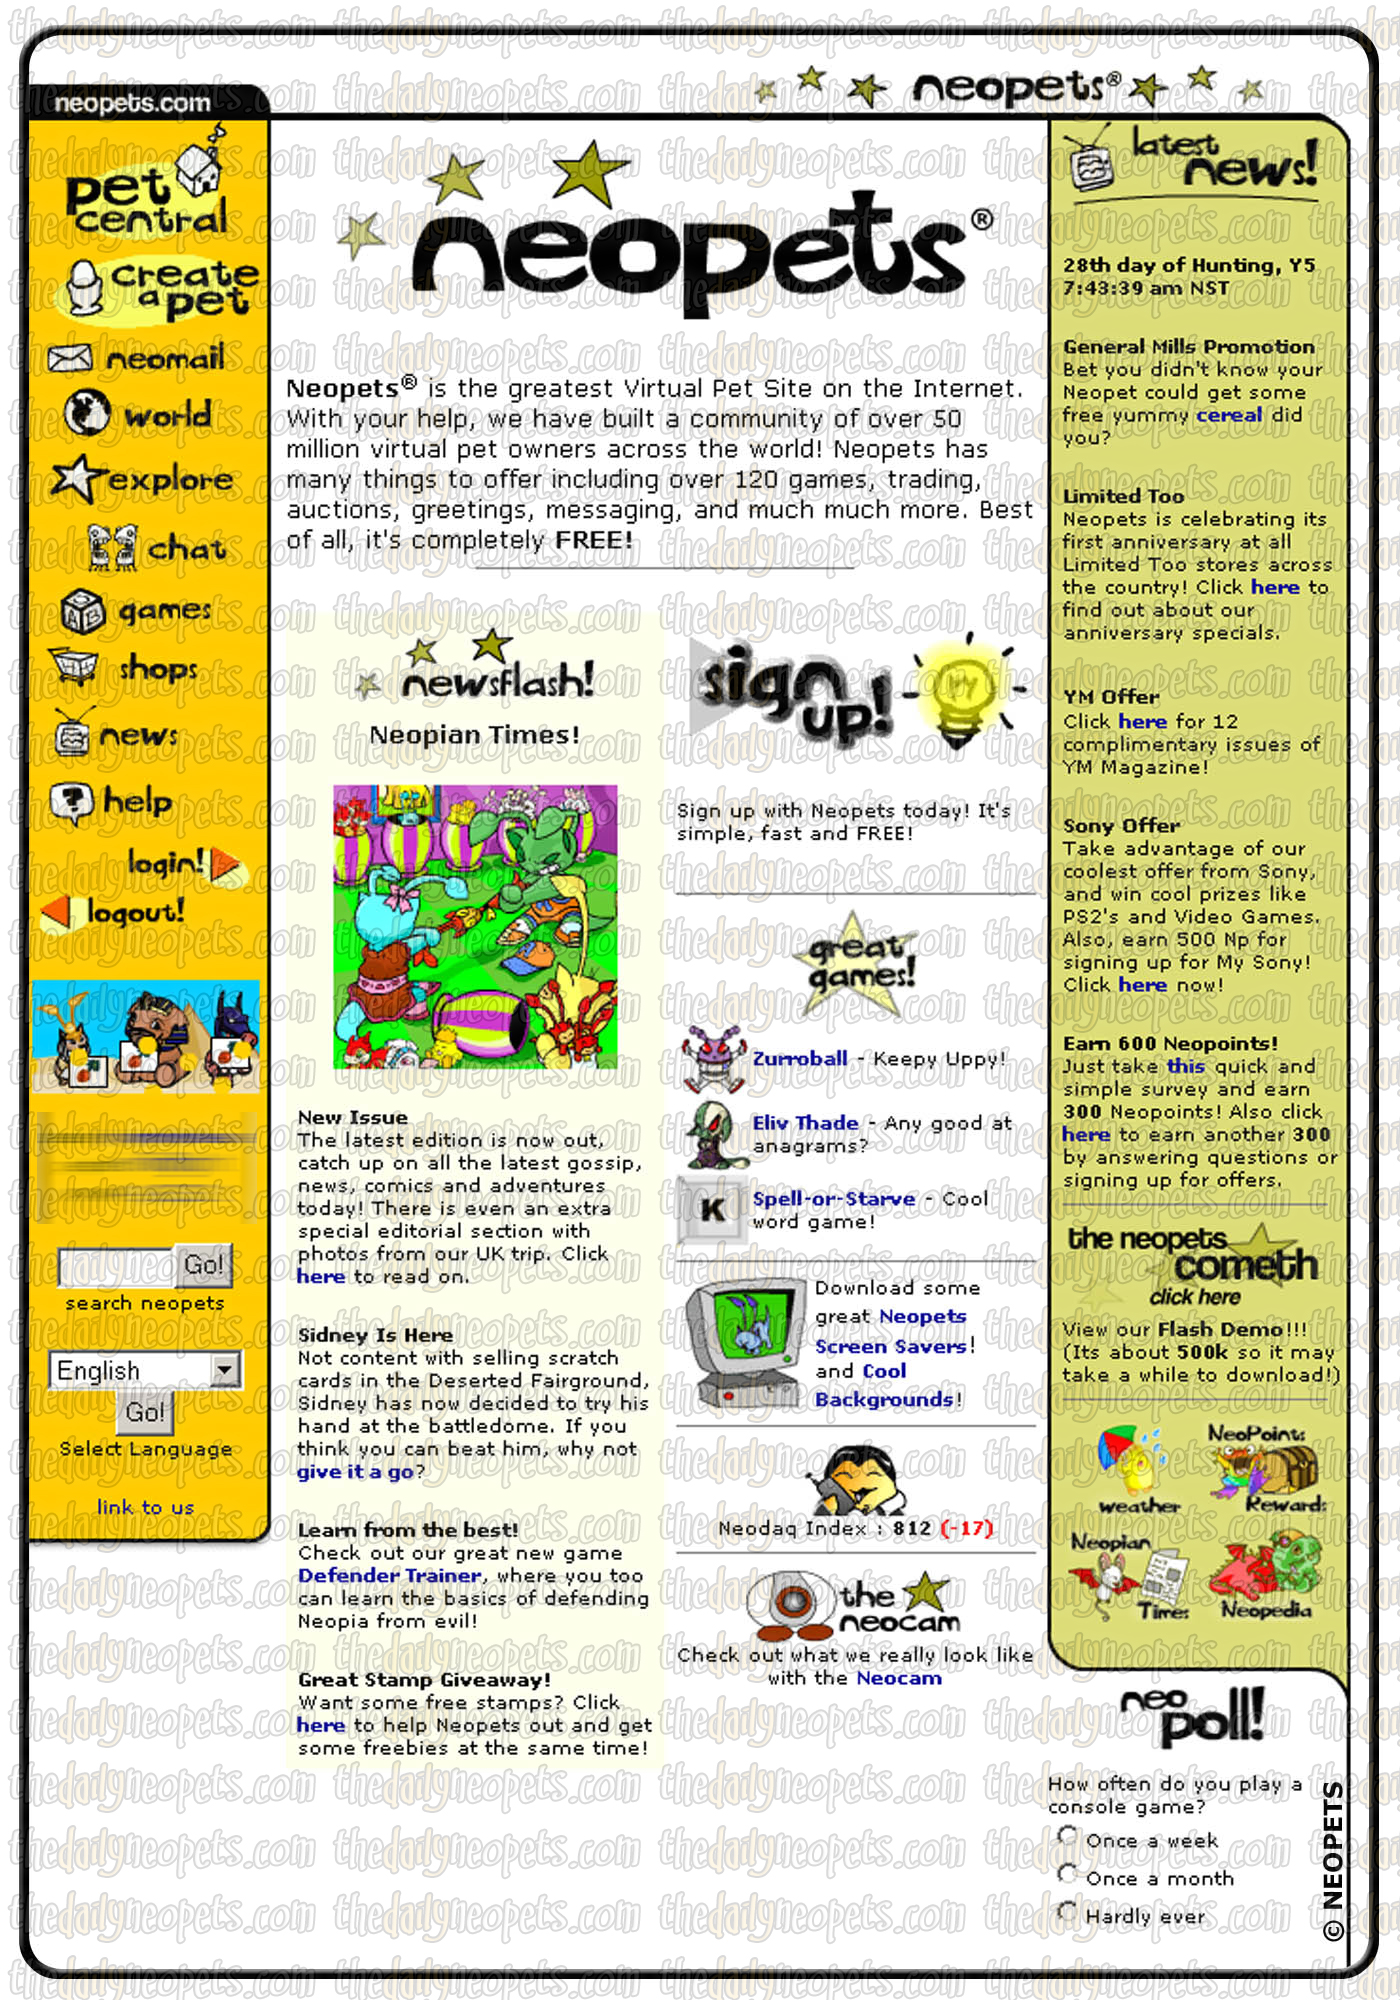 The Old Layout | The Daily Neopets